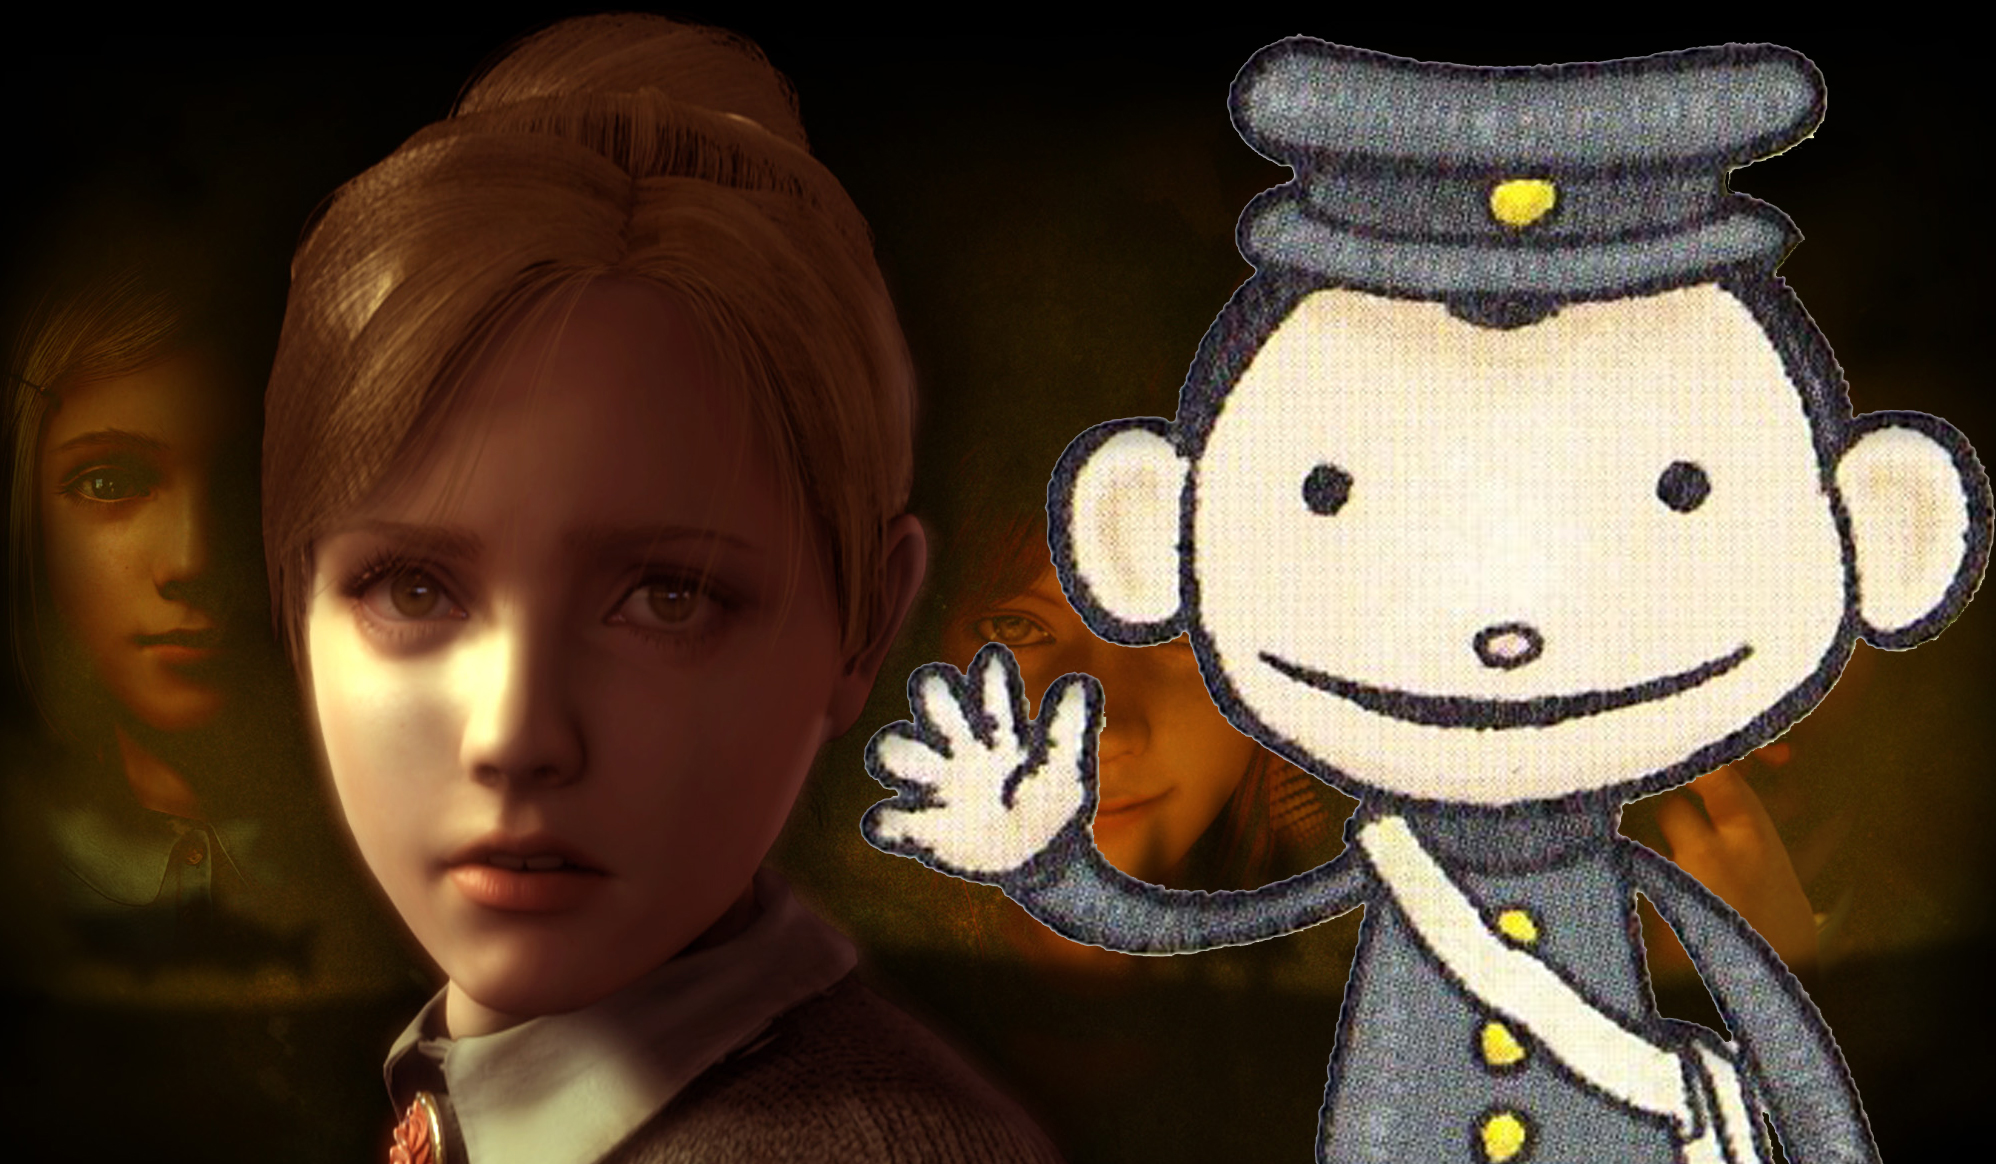 Why yes, Onion Games, I would like Rule of Rose and Chulip ported to modern consoles screenshot